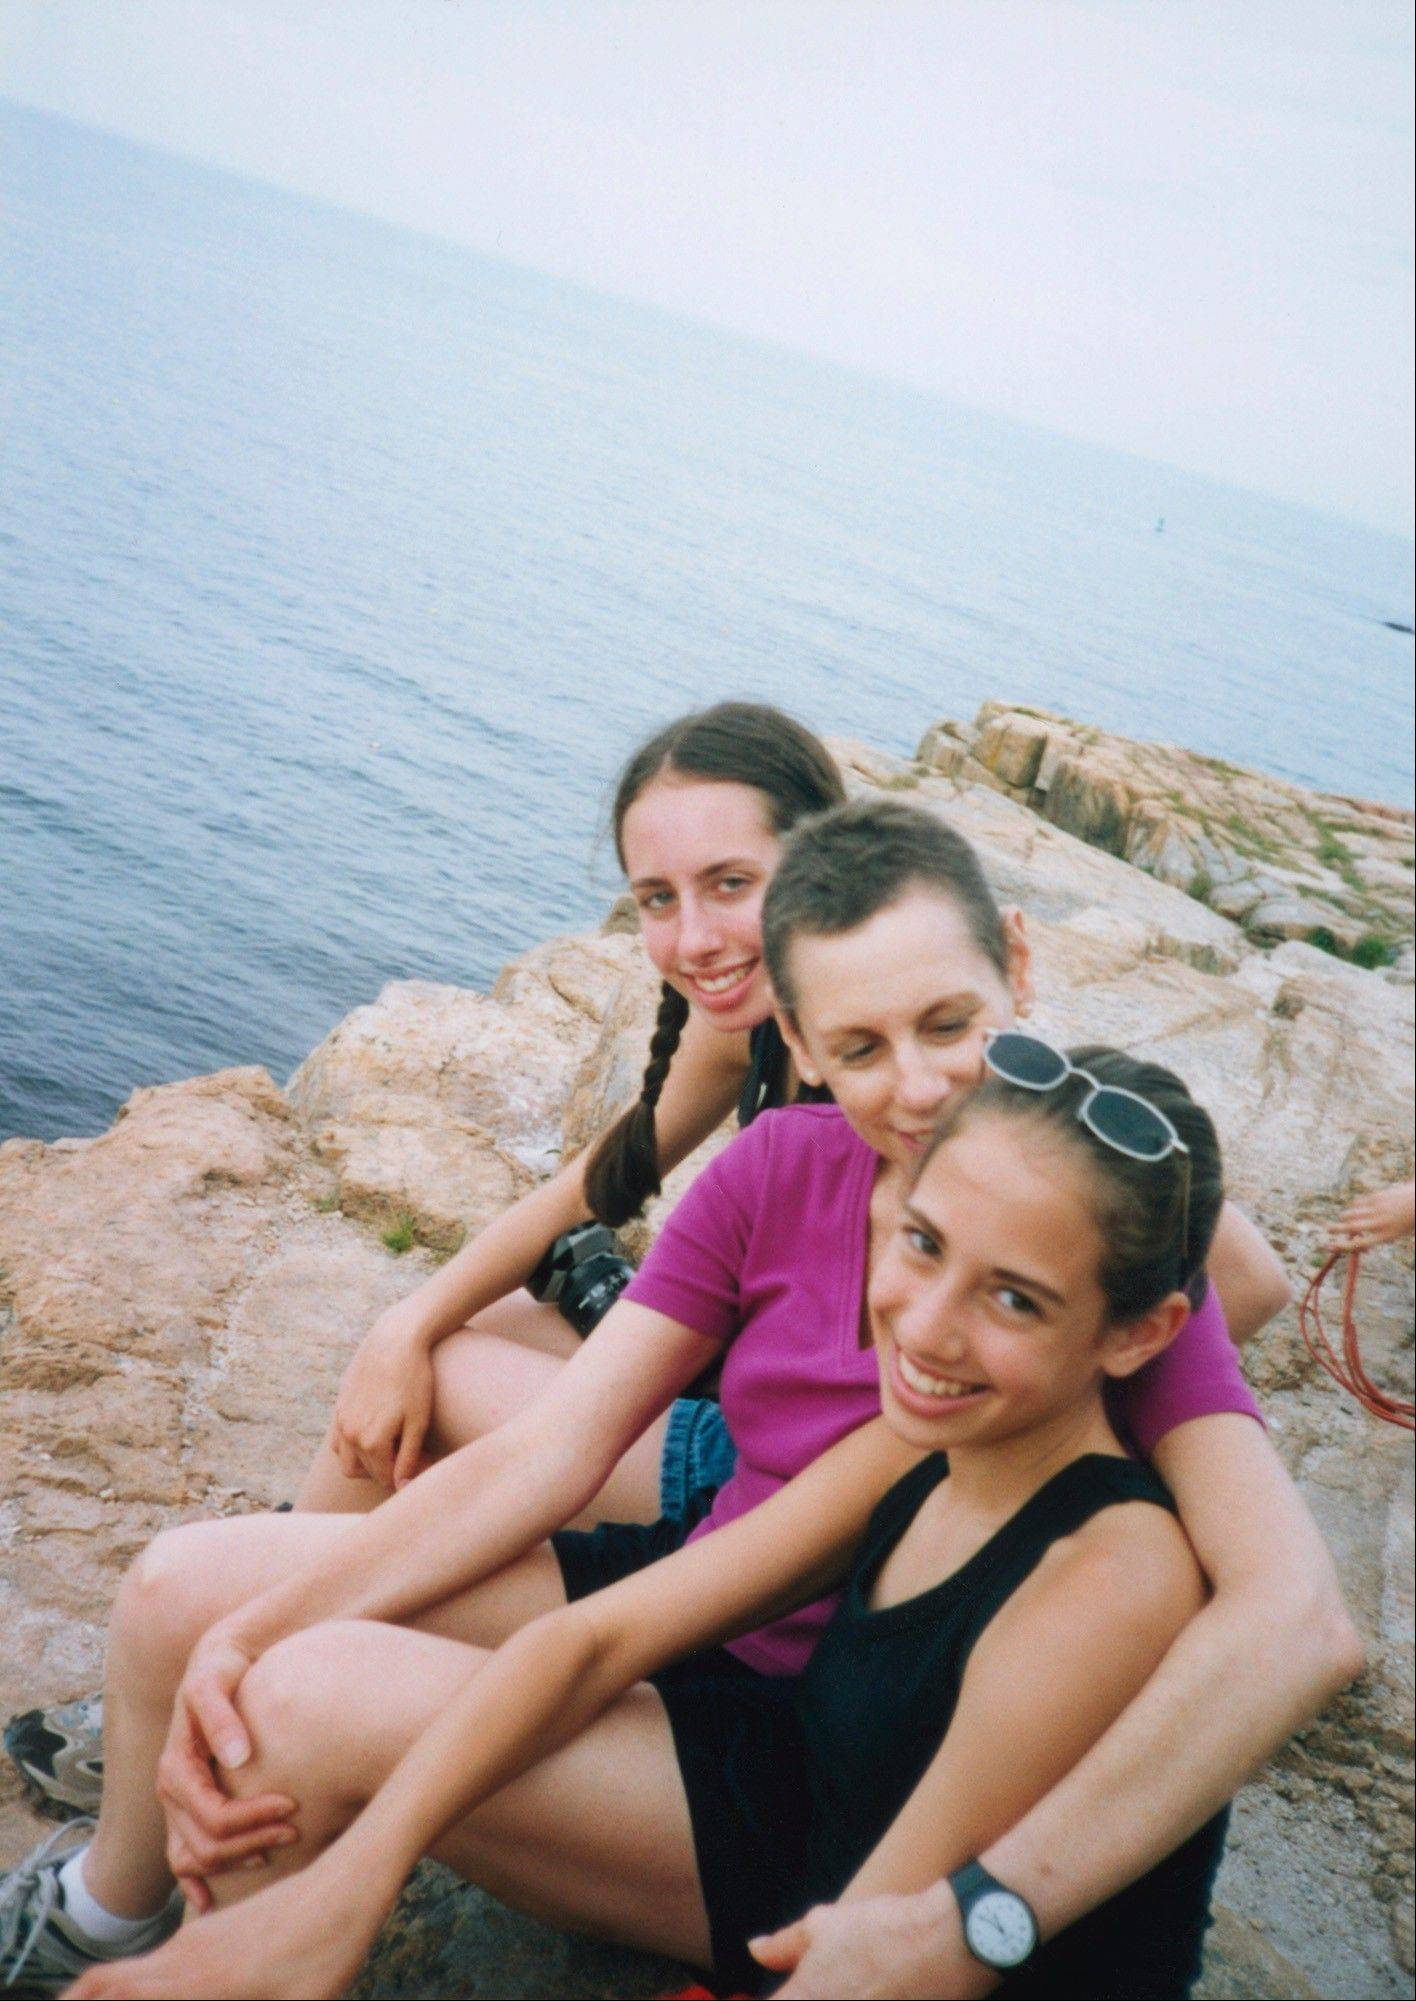 While undergoing treatment for cancer in 2002, Marsha Silver shares a moment with her daughters Daniela, foreground, and Maya.